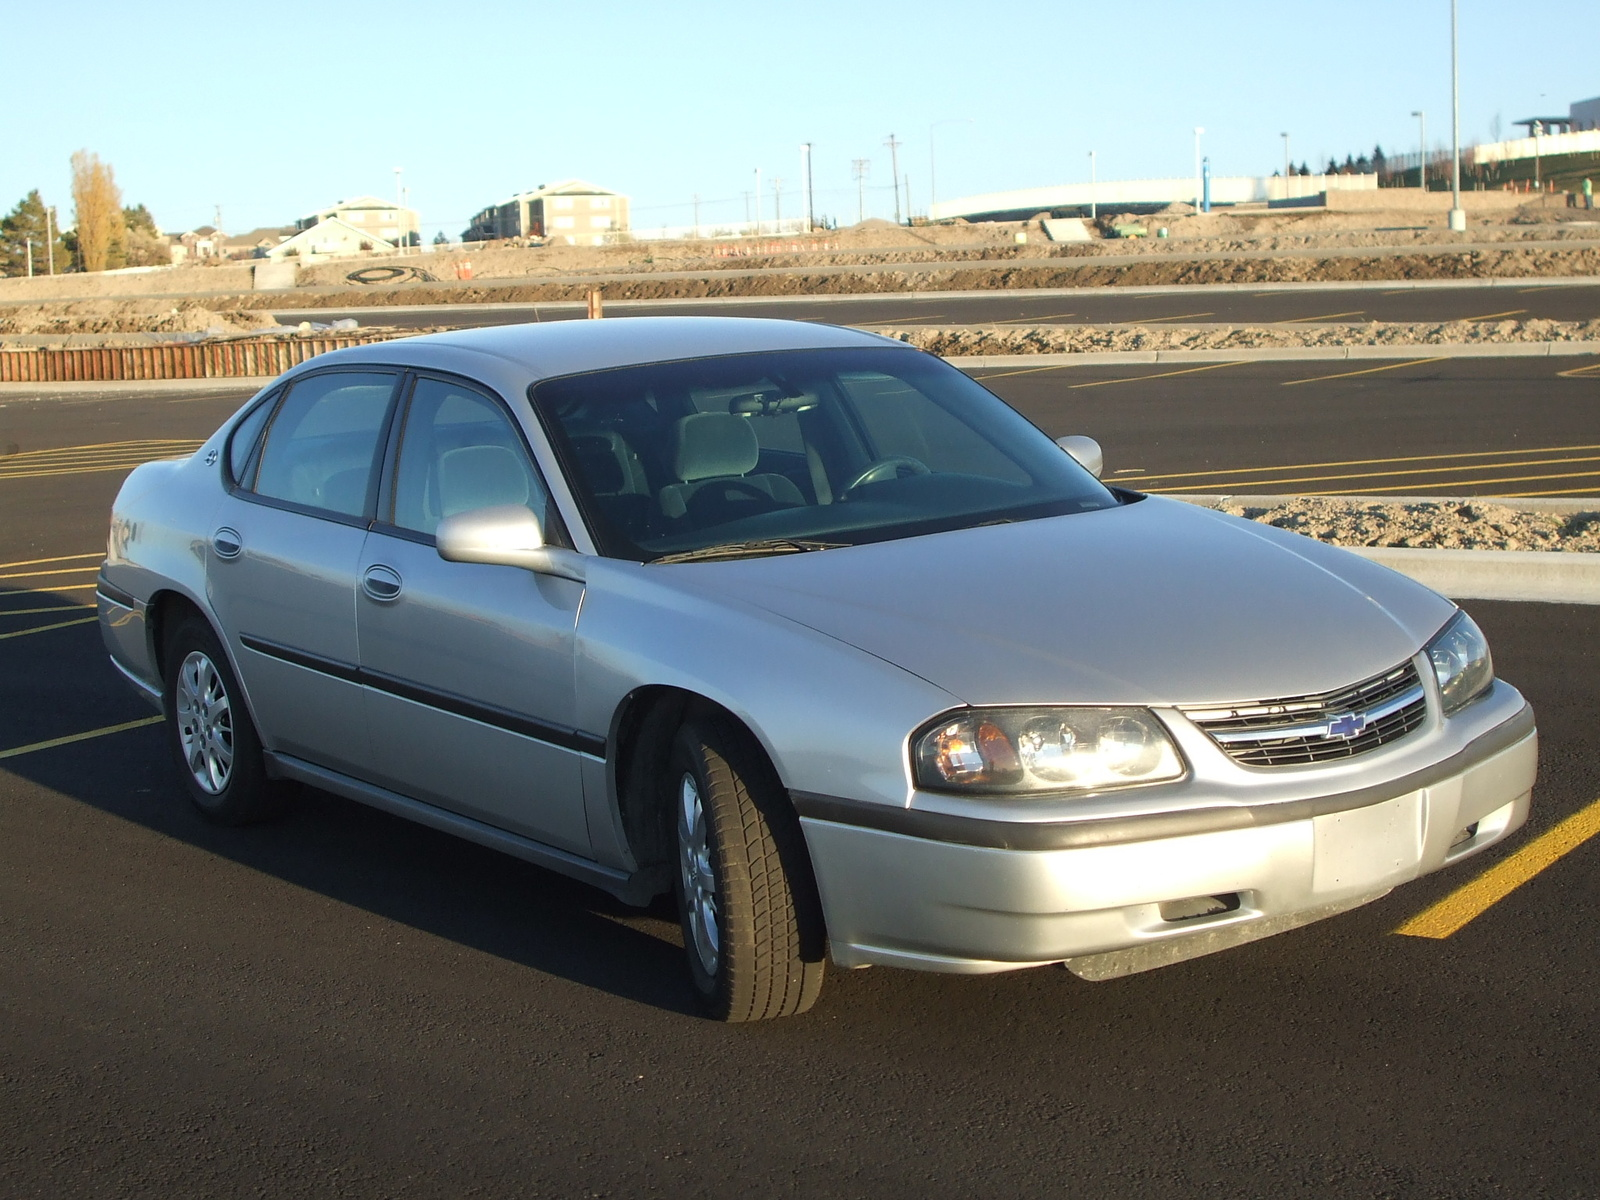 2003 Chevrolet Impala Base picture